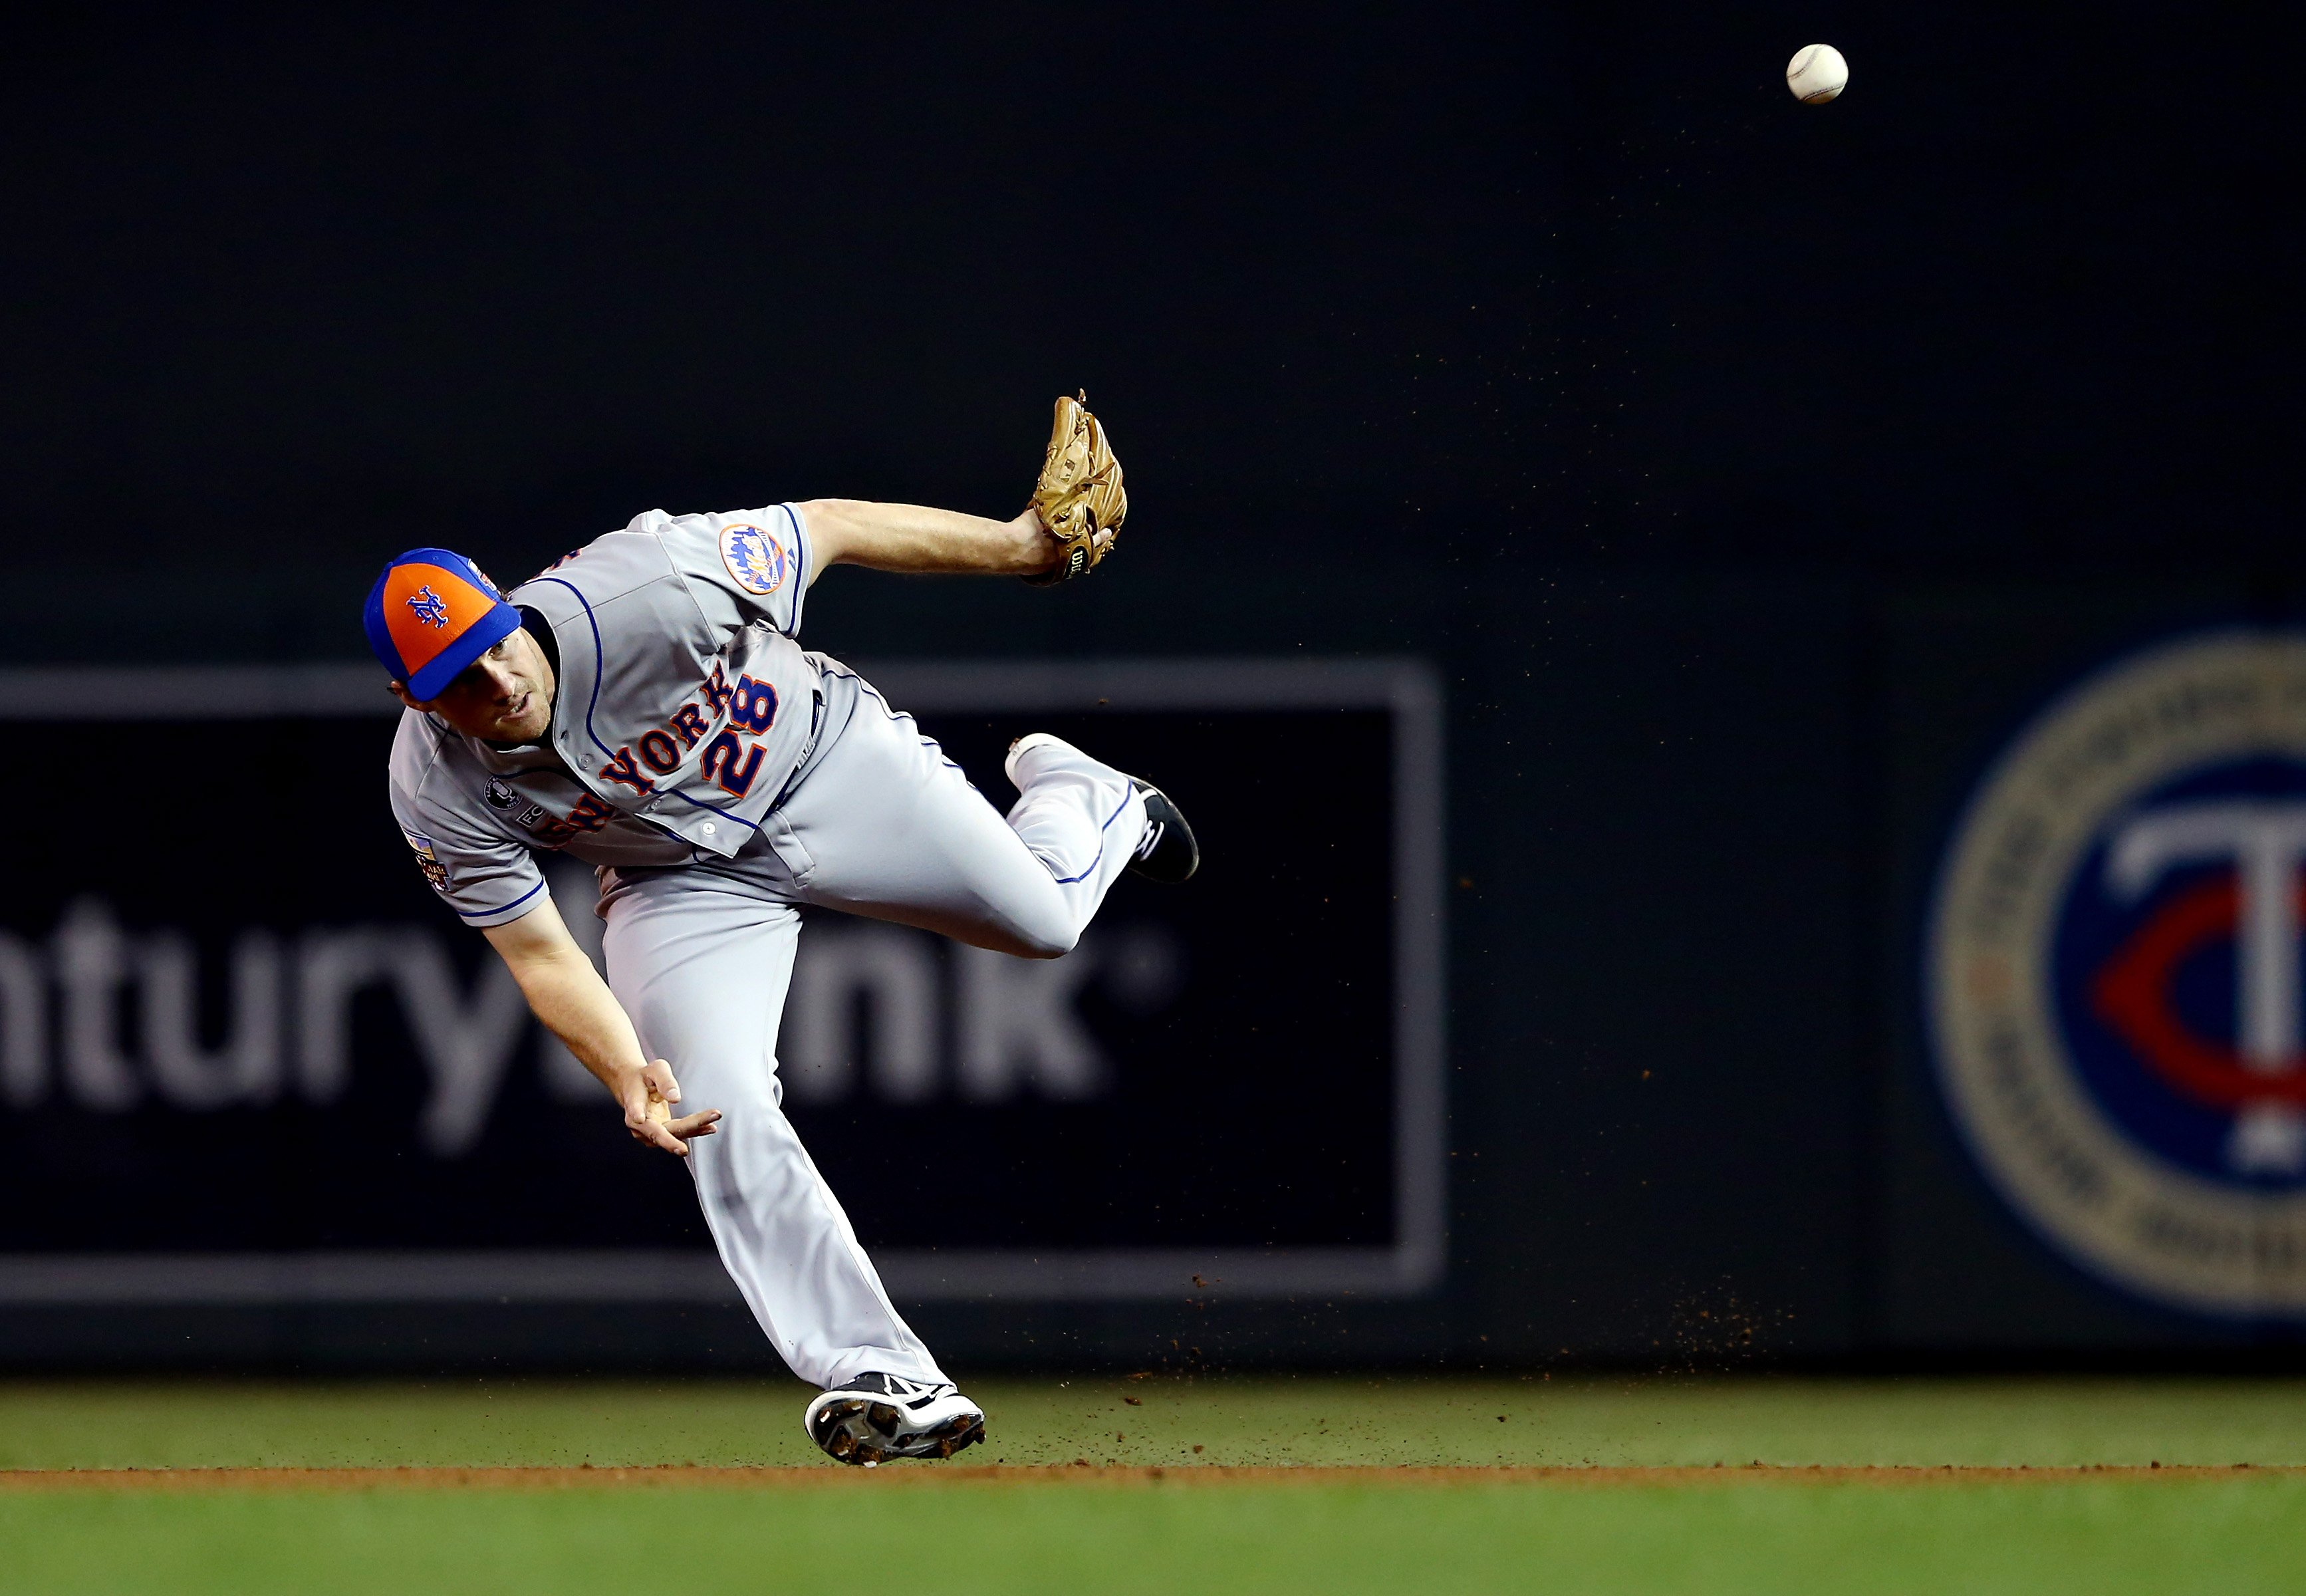 National League All-Star Daniel Murphy of the New York Mets makes a defensive play against the American League All-Stars during the 85th MLB All-Star Game at Target Field on July 15, 2014 in Minneapolis.